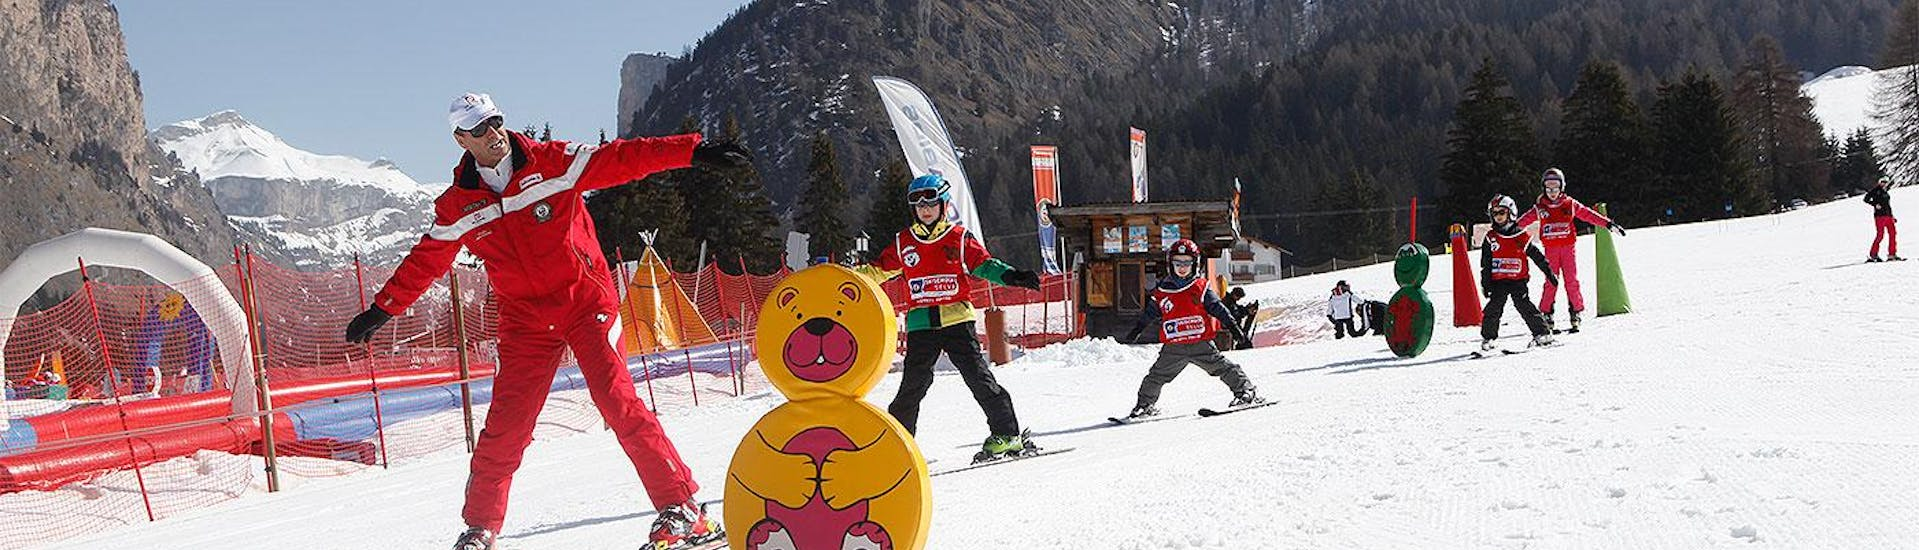 Kids Ski Lessons for Beginners (4-12 y.) - Half-Day with Ski and Snowboard School Selva Val Gardena - Hero image